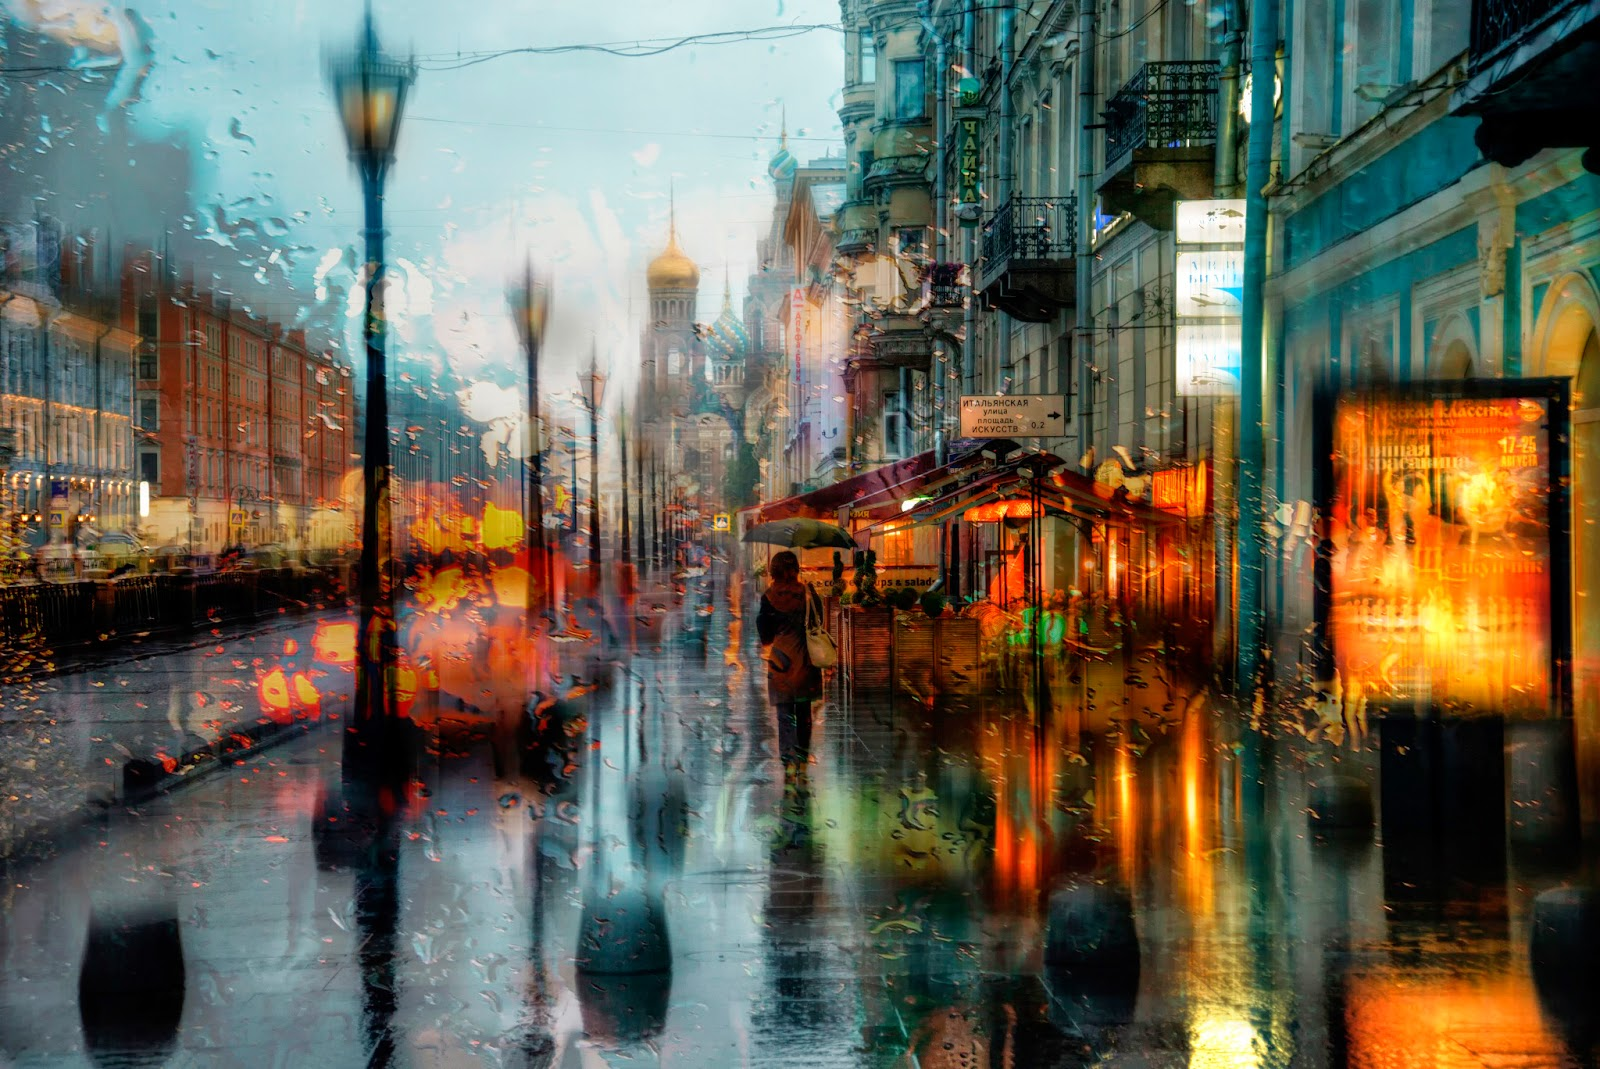 100% Desktop Quality HD Wallpapers 1080p Free Download: Rainy Day City HD Wallpapers